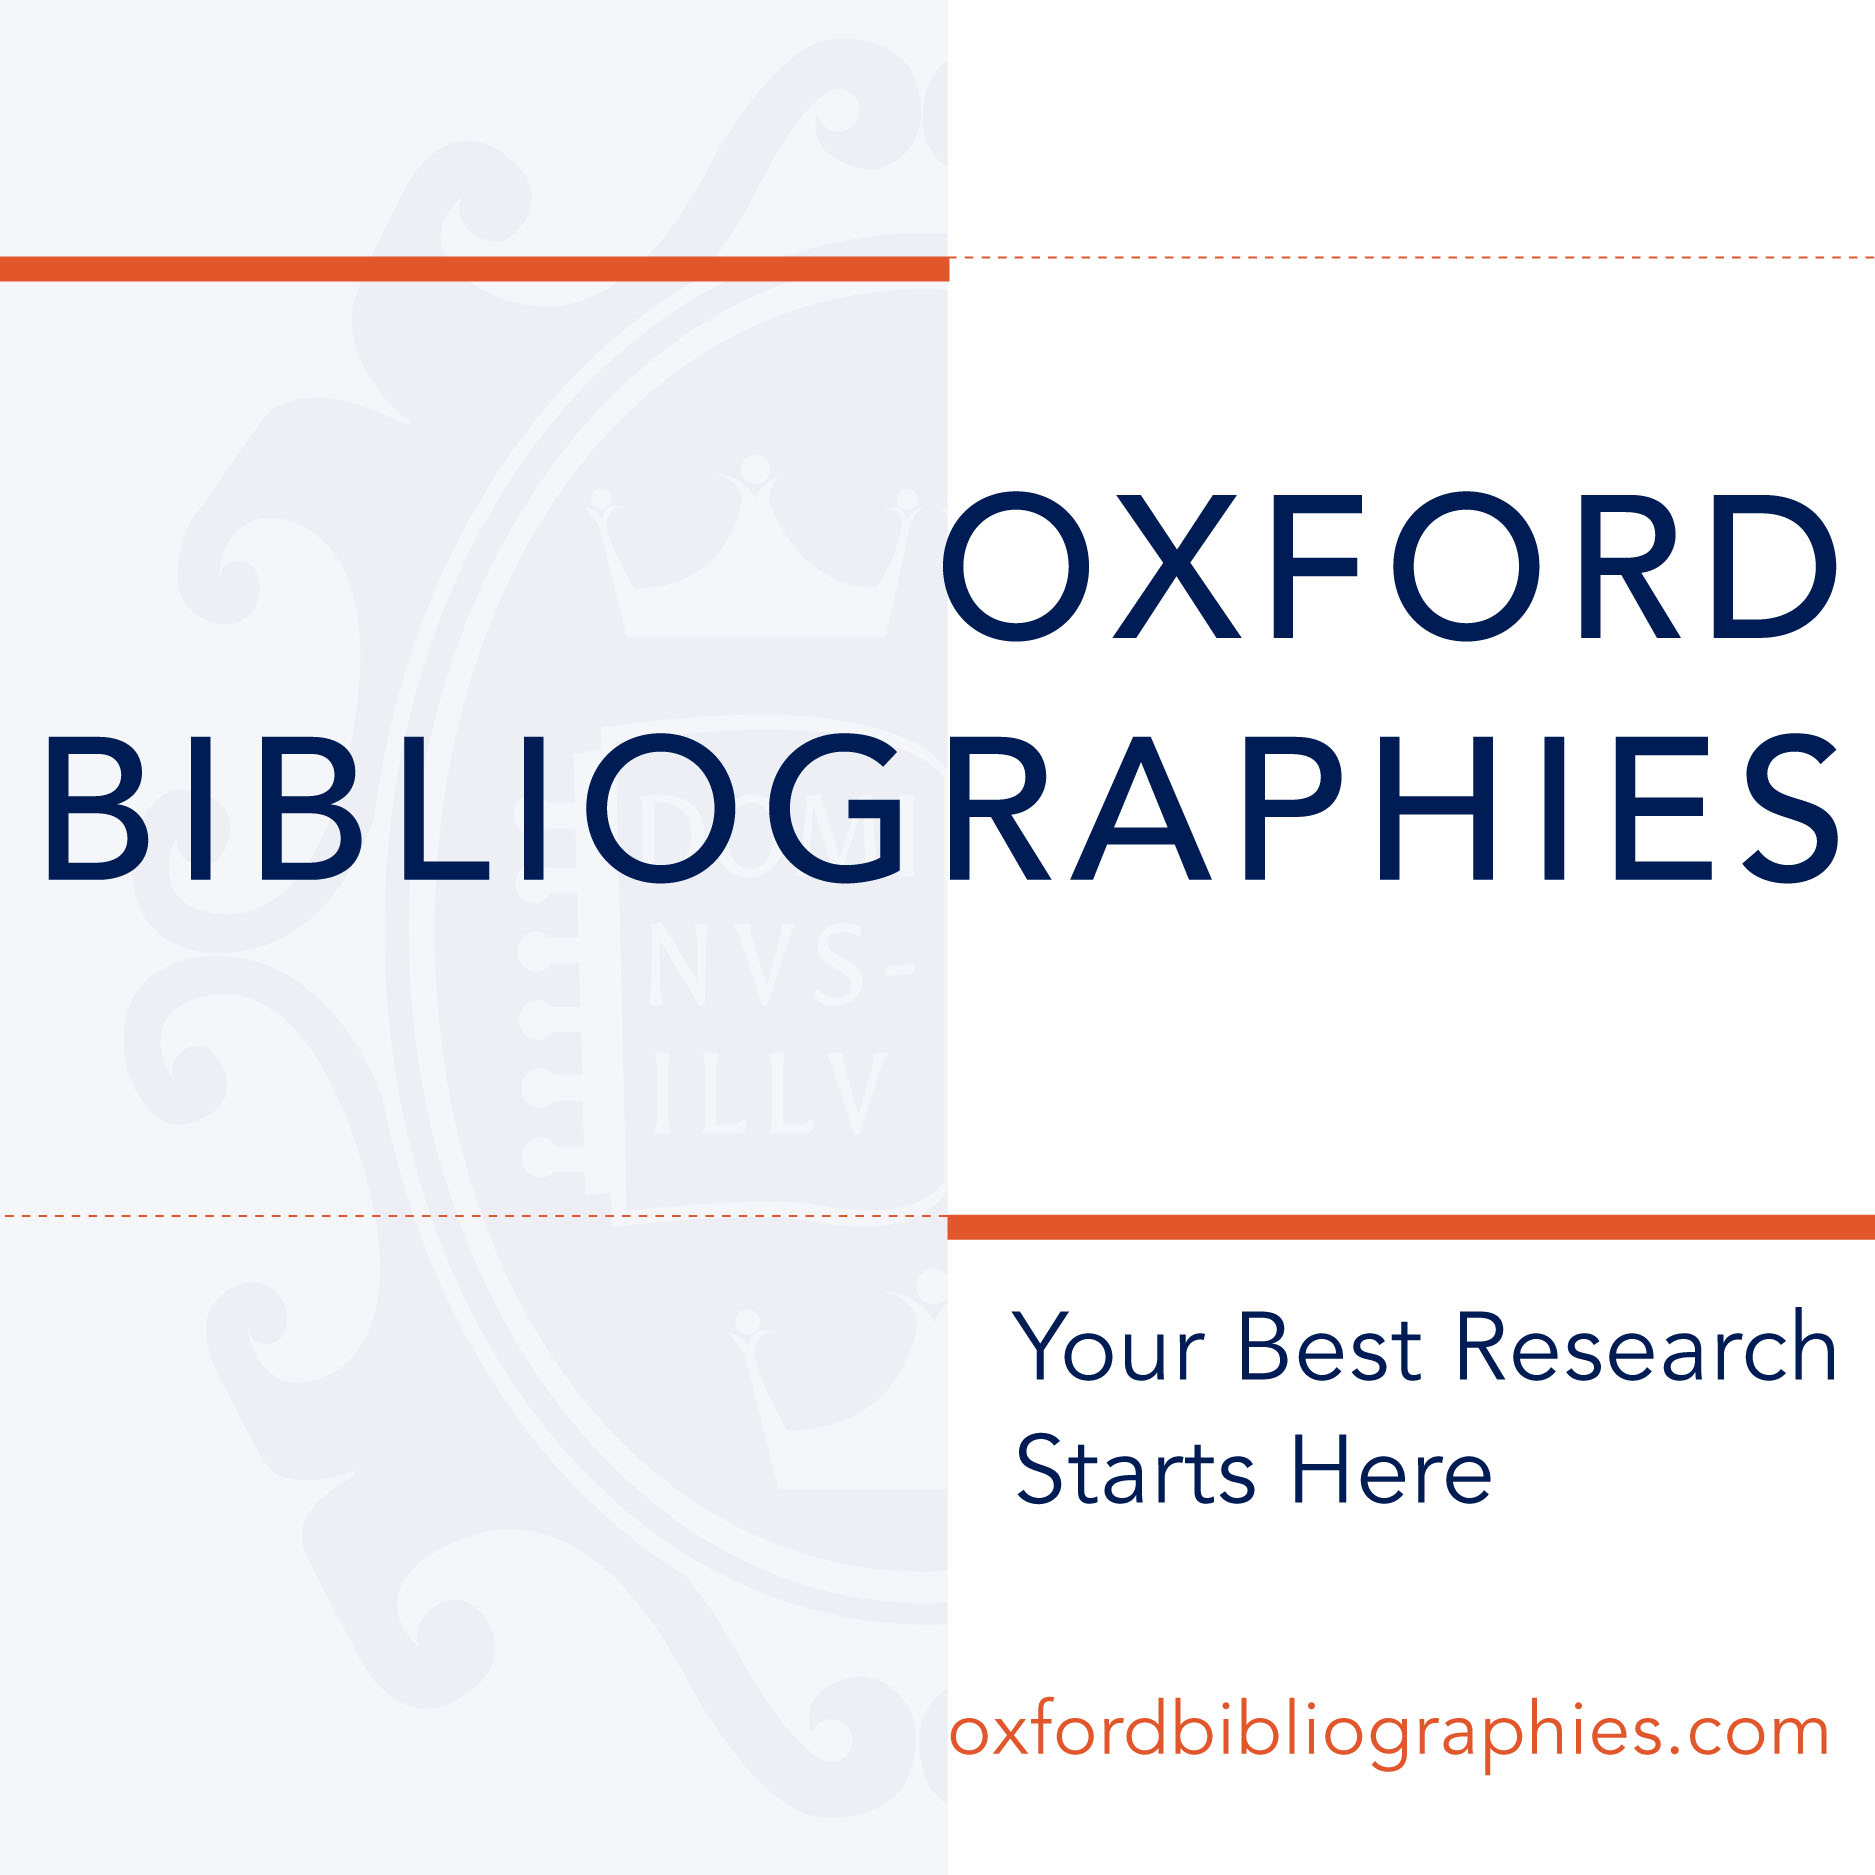 Oxford Bibliographies: Your Best Research Starts Here